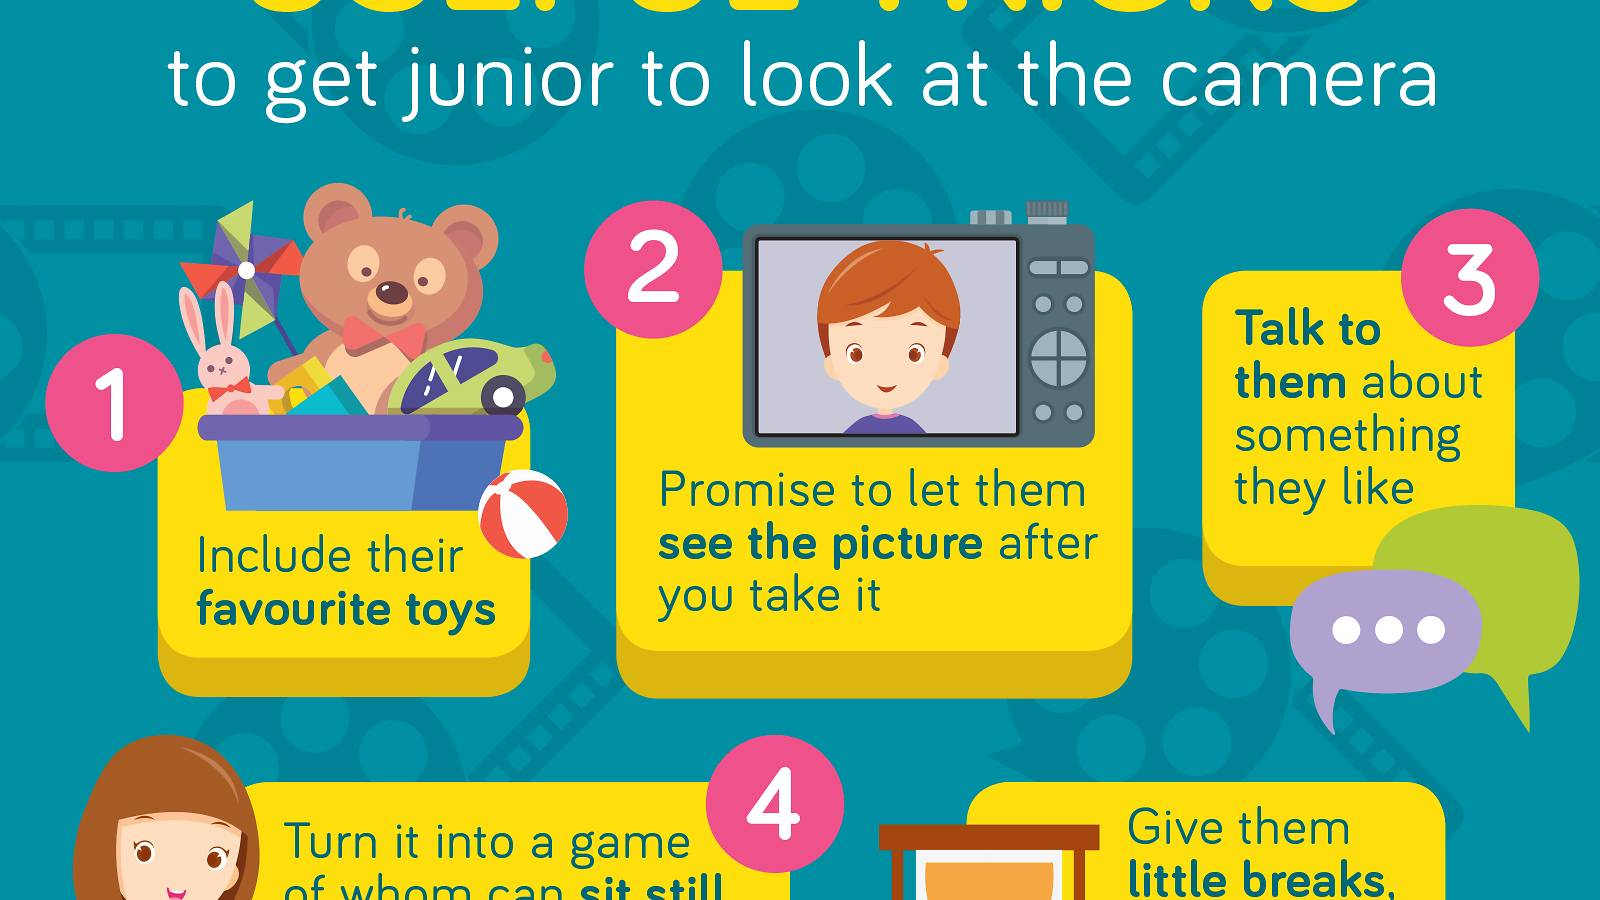 Babies-7-terrific-tips-for-capturing-perfect-shots-of-your-tot-[Infographic]_02